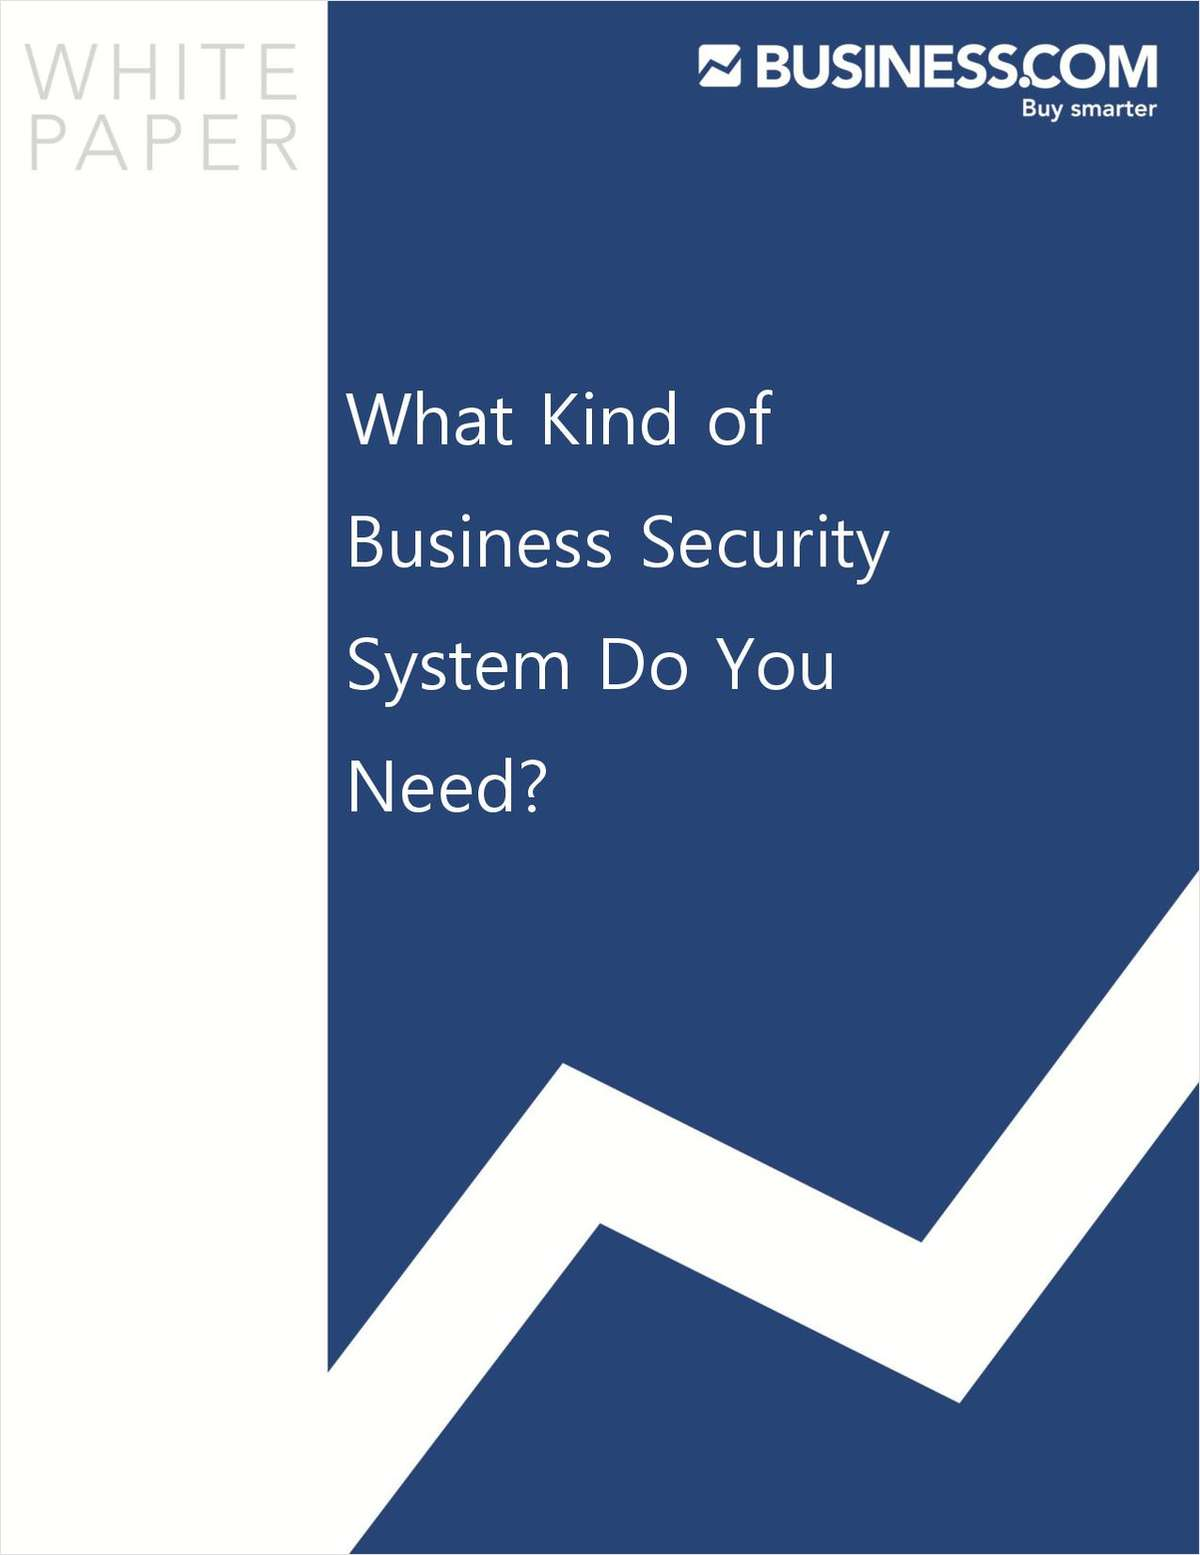 What Kind of Business Security System Do You Need?